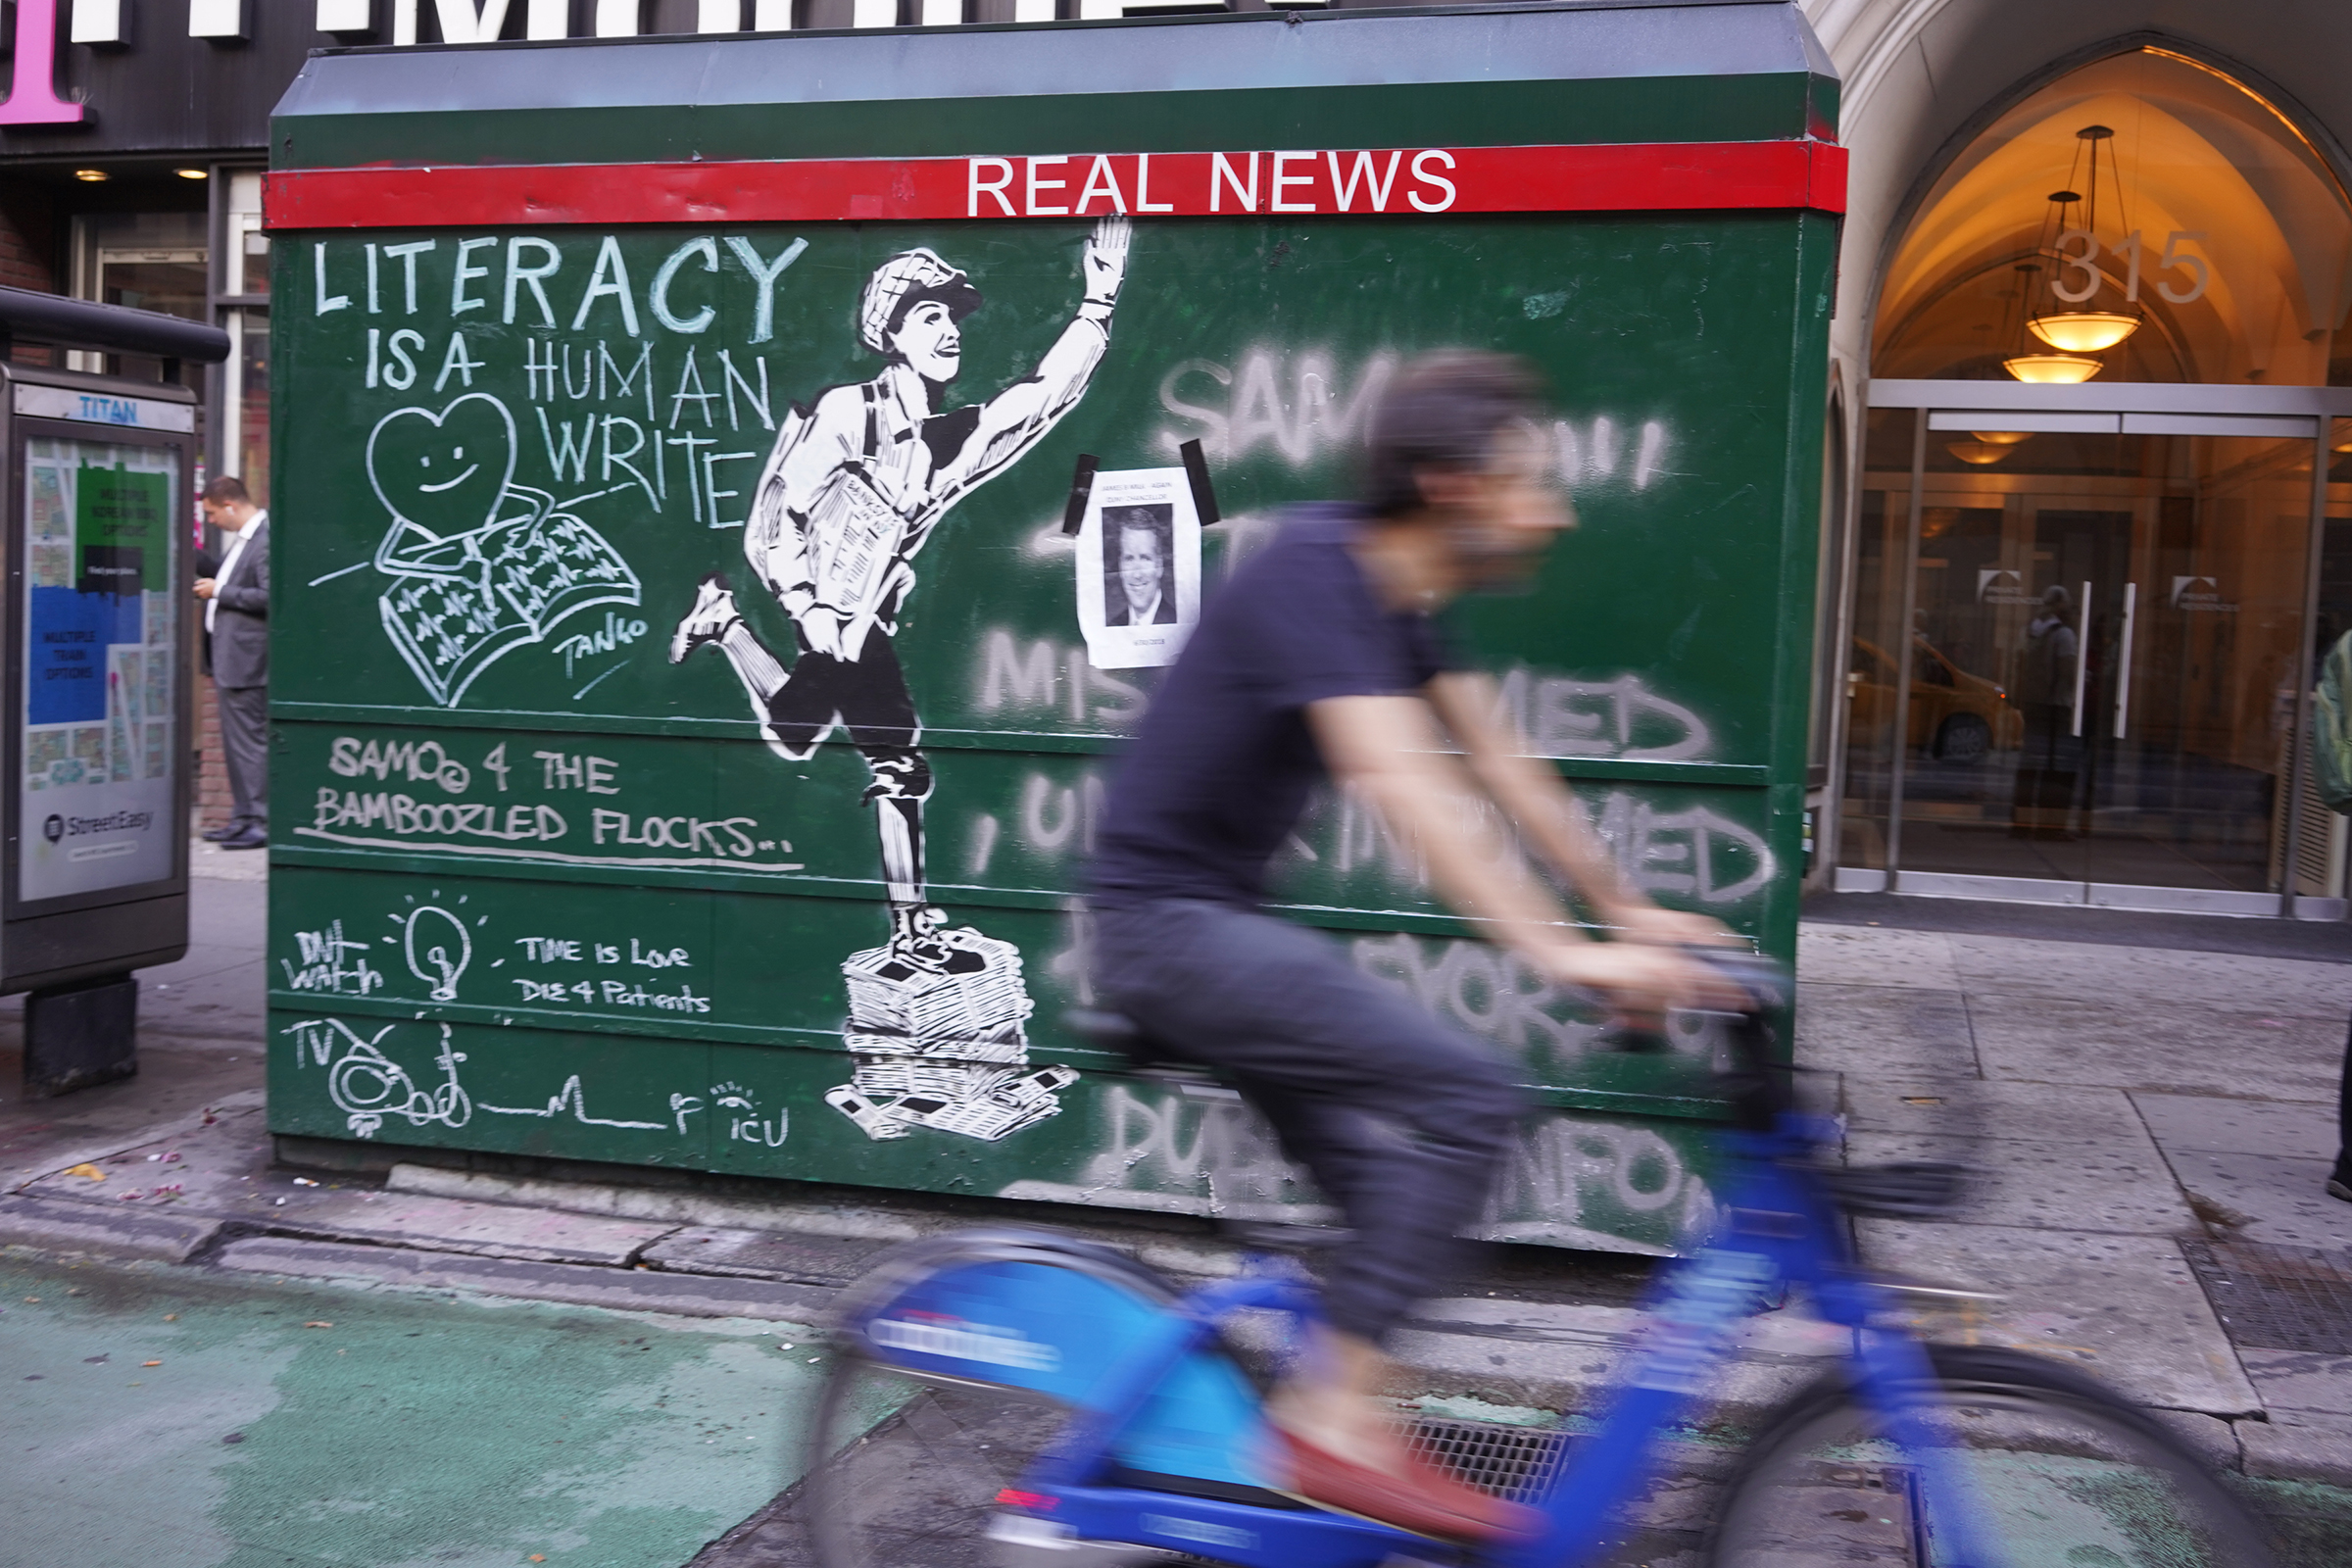 """Real news"" in the East Village, New York. June 28, 2018. / Brianna Spause"